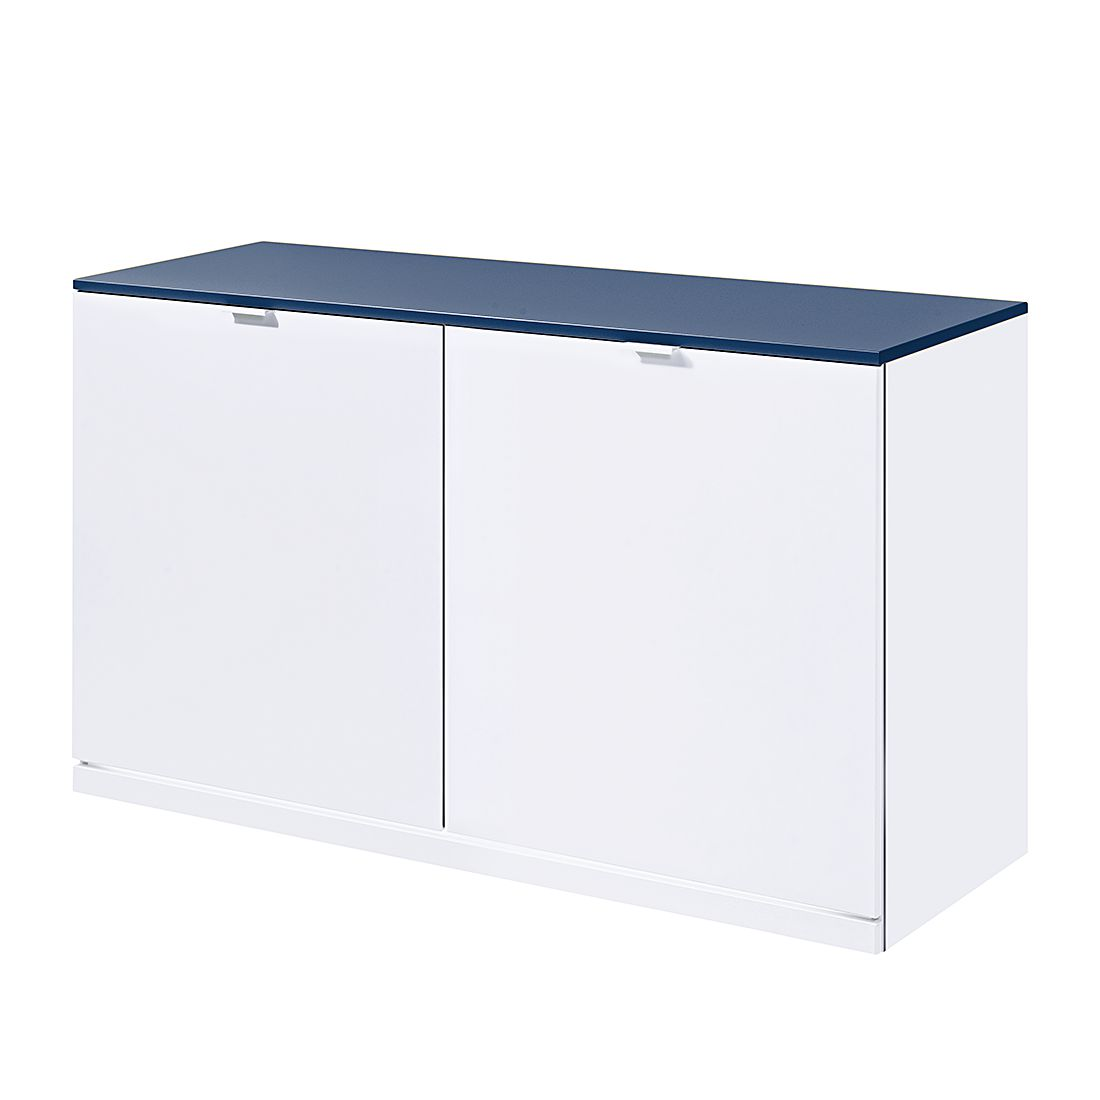 sideboard vip ii wei blau mit led beleuchtung. Black Bedroom Furniture Sets. Home Design Ideas